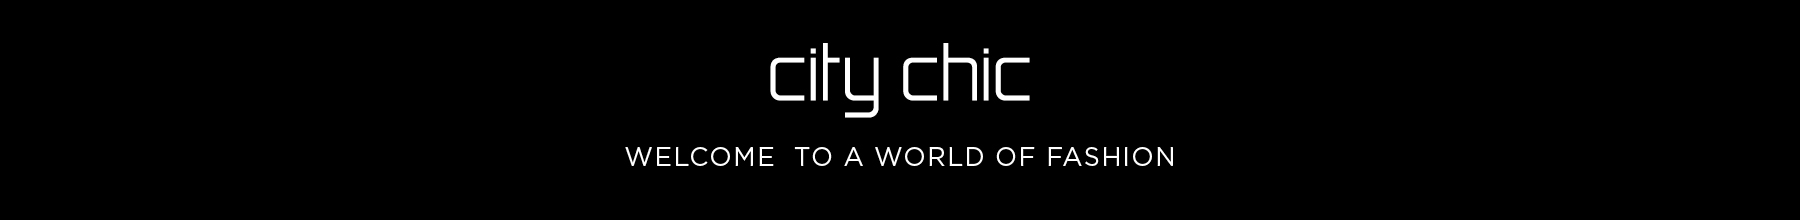 CITY CHIC - Welcome to a World of Fashion